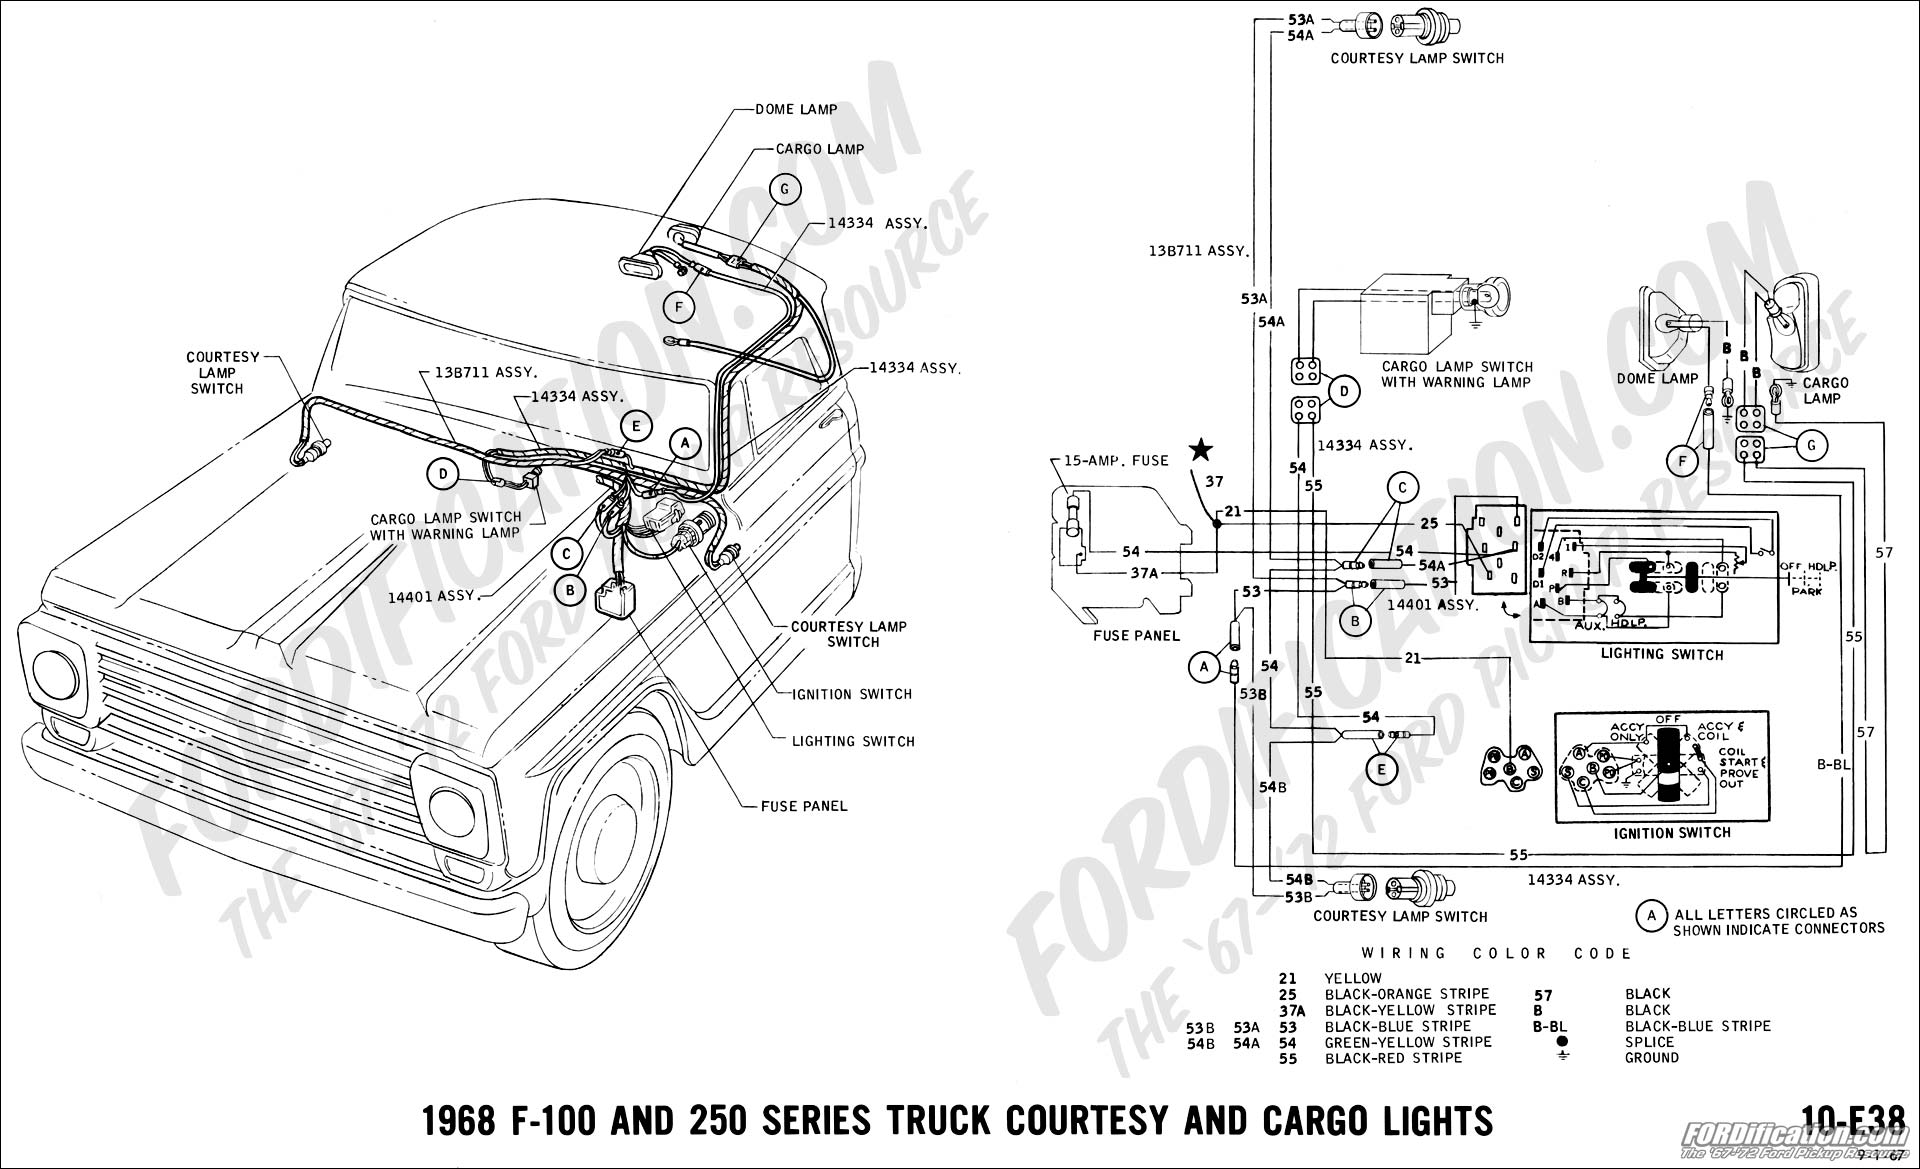 1980 Ford Engine Wiring Harness Diy Enthusiasts Diagrams 1974 F 250 Ignition Switch Diagram Example Electrical Rh Olkha Co 1997 Ranger Connectors